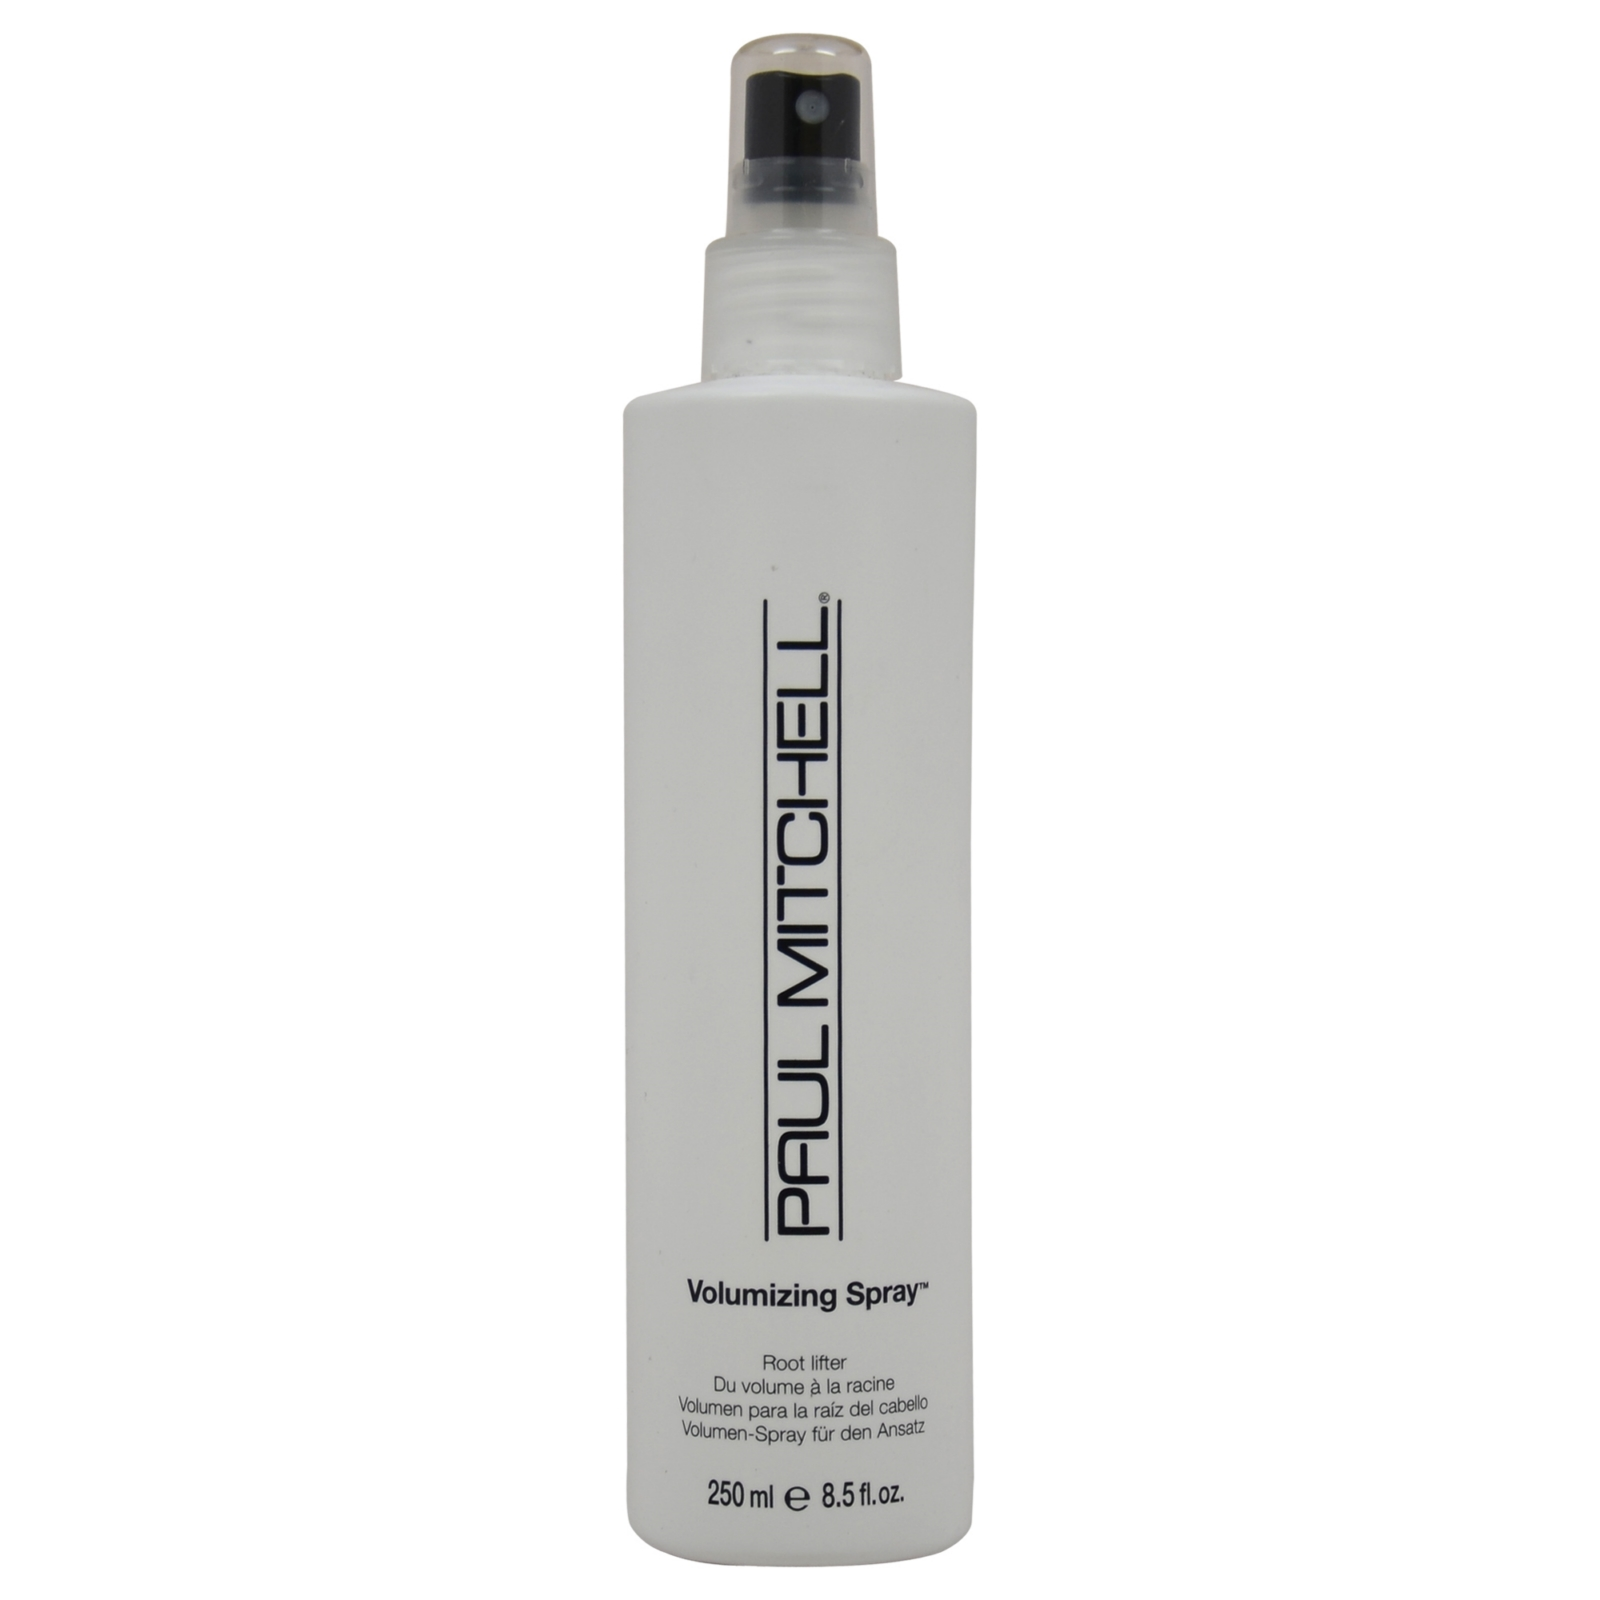 Paul Mitchell 700108 Volumizing Spray - 8.5 oz - Hair Spray